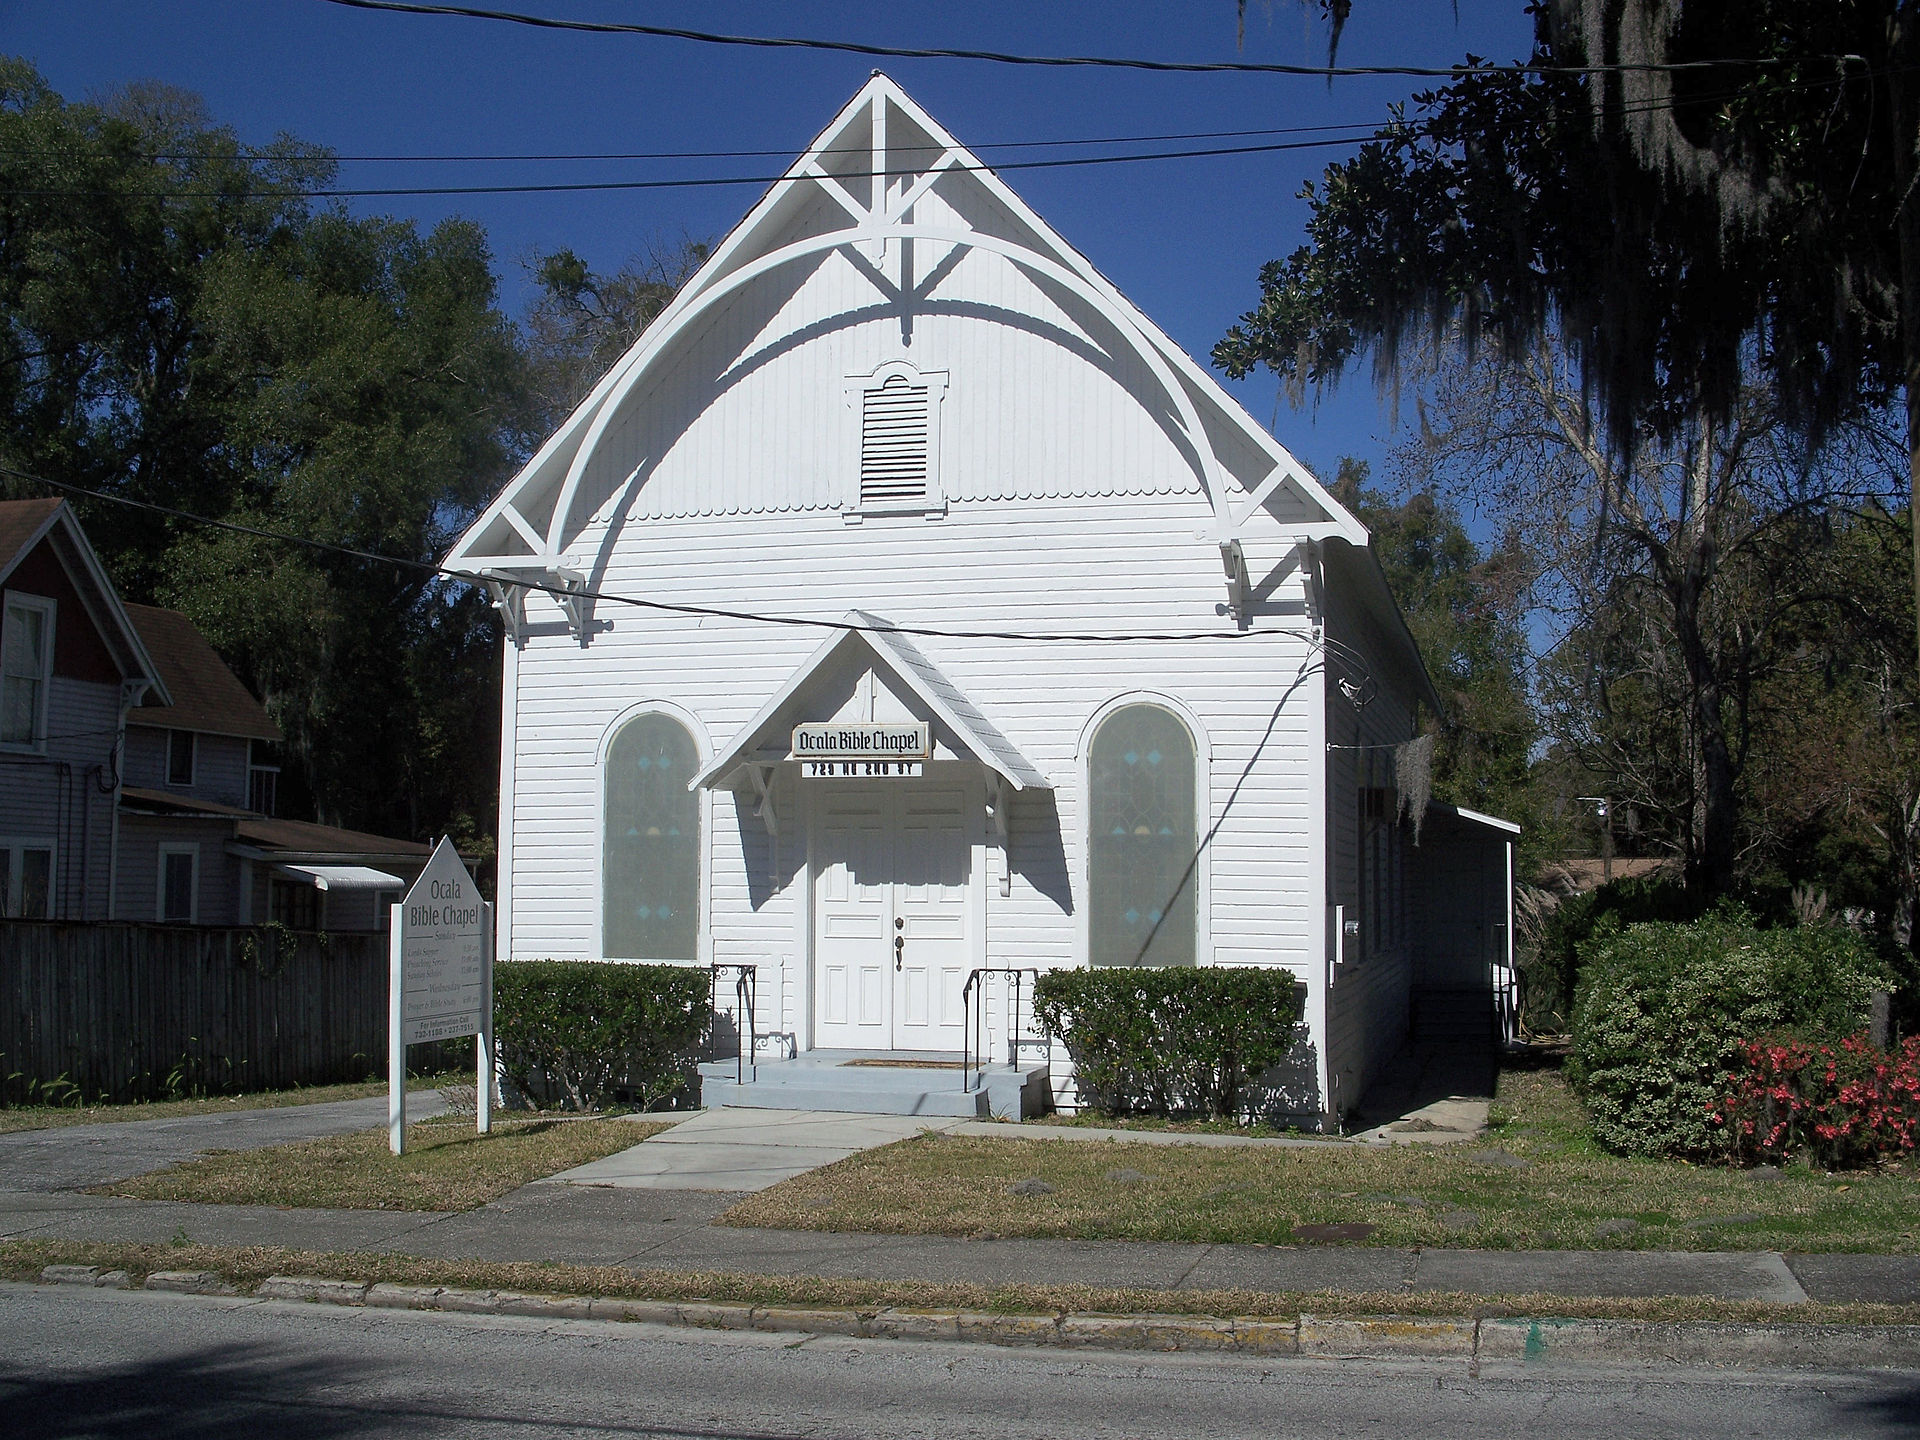 The original synagogue, built in 1888, is now a Baptist church.